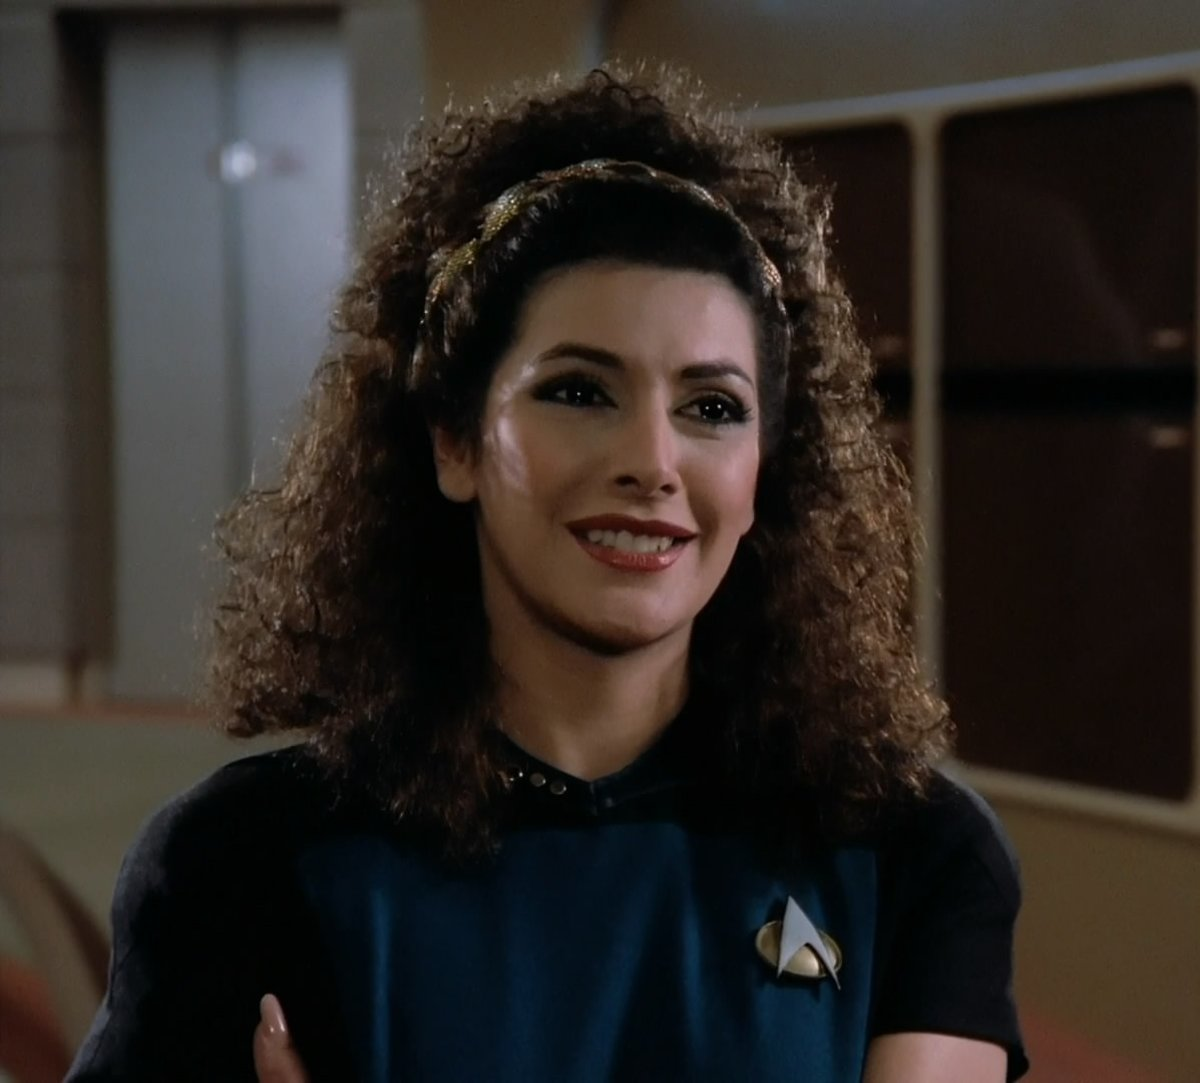 deanna-troi-and-the-nature-of-consent